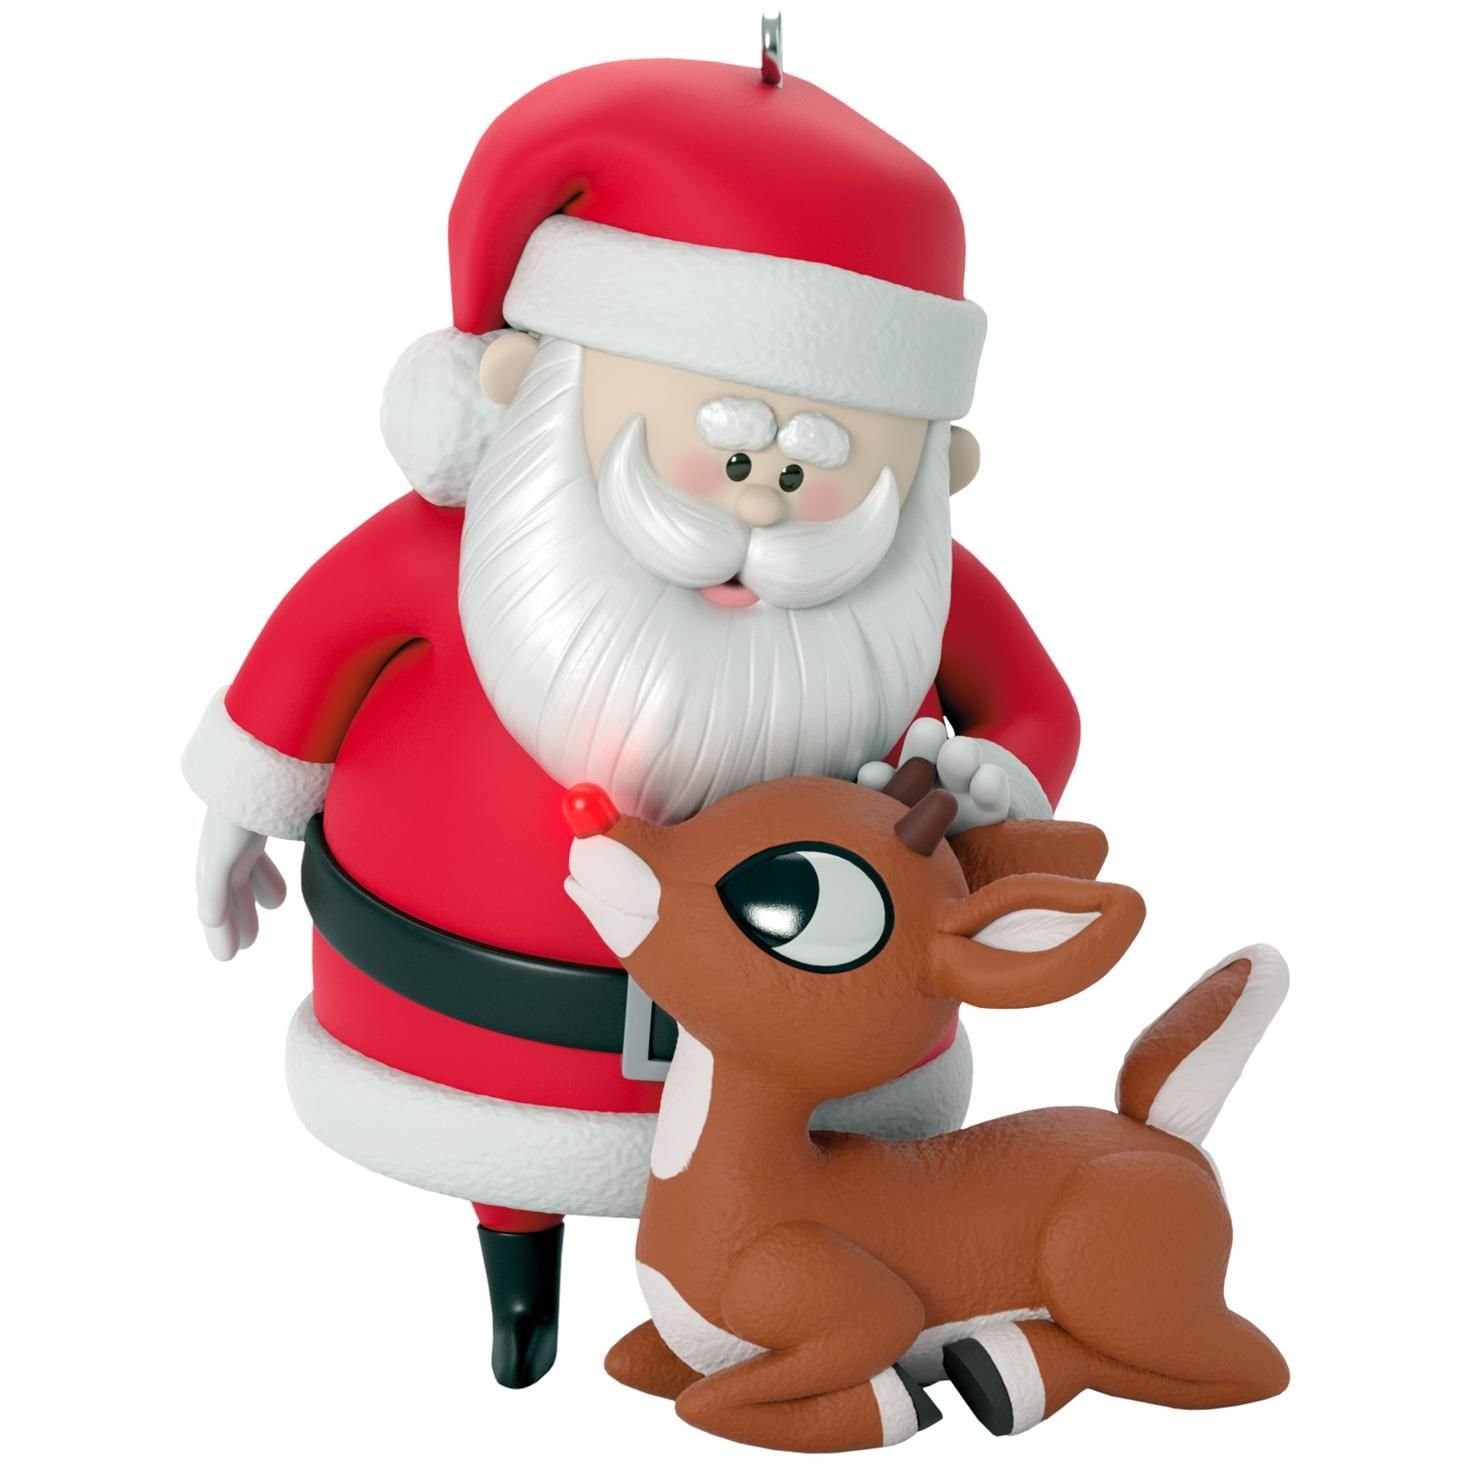 Rudolph the Red-Nosed Reindeer Won't You Guide My Sleigh Tonight? Ornament With Light Movies & TV